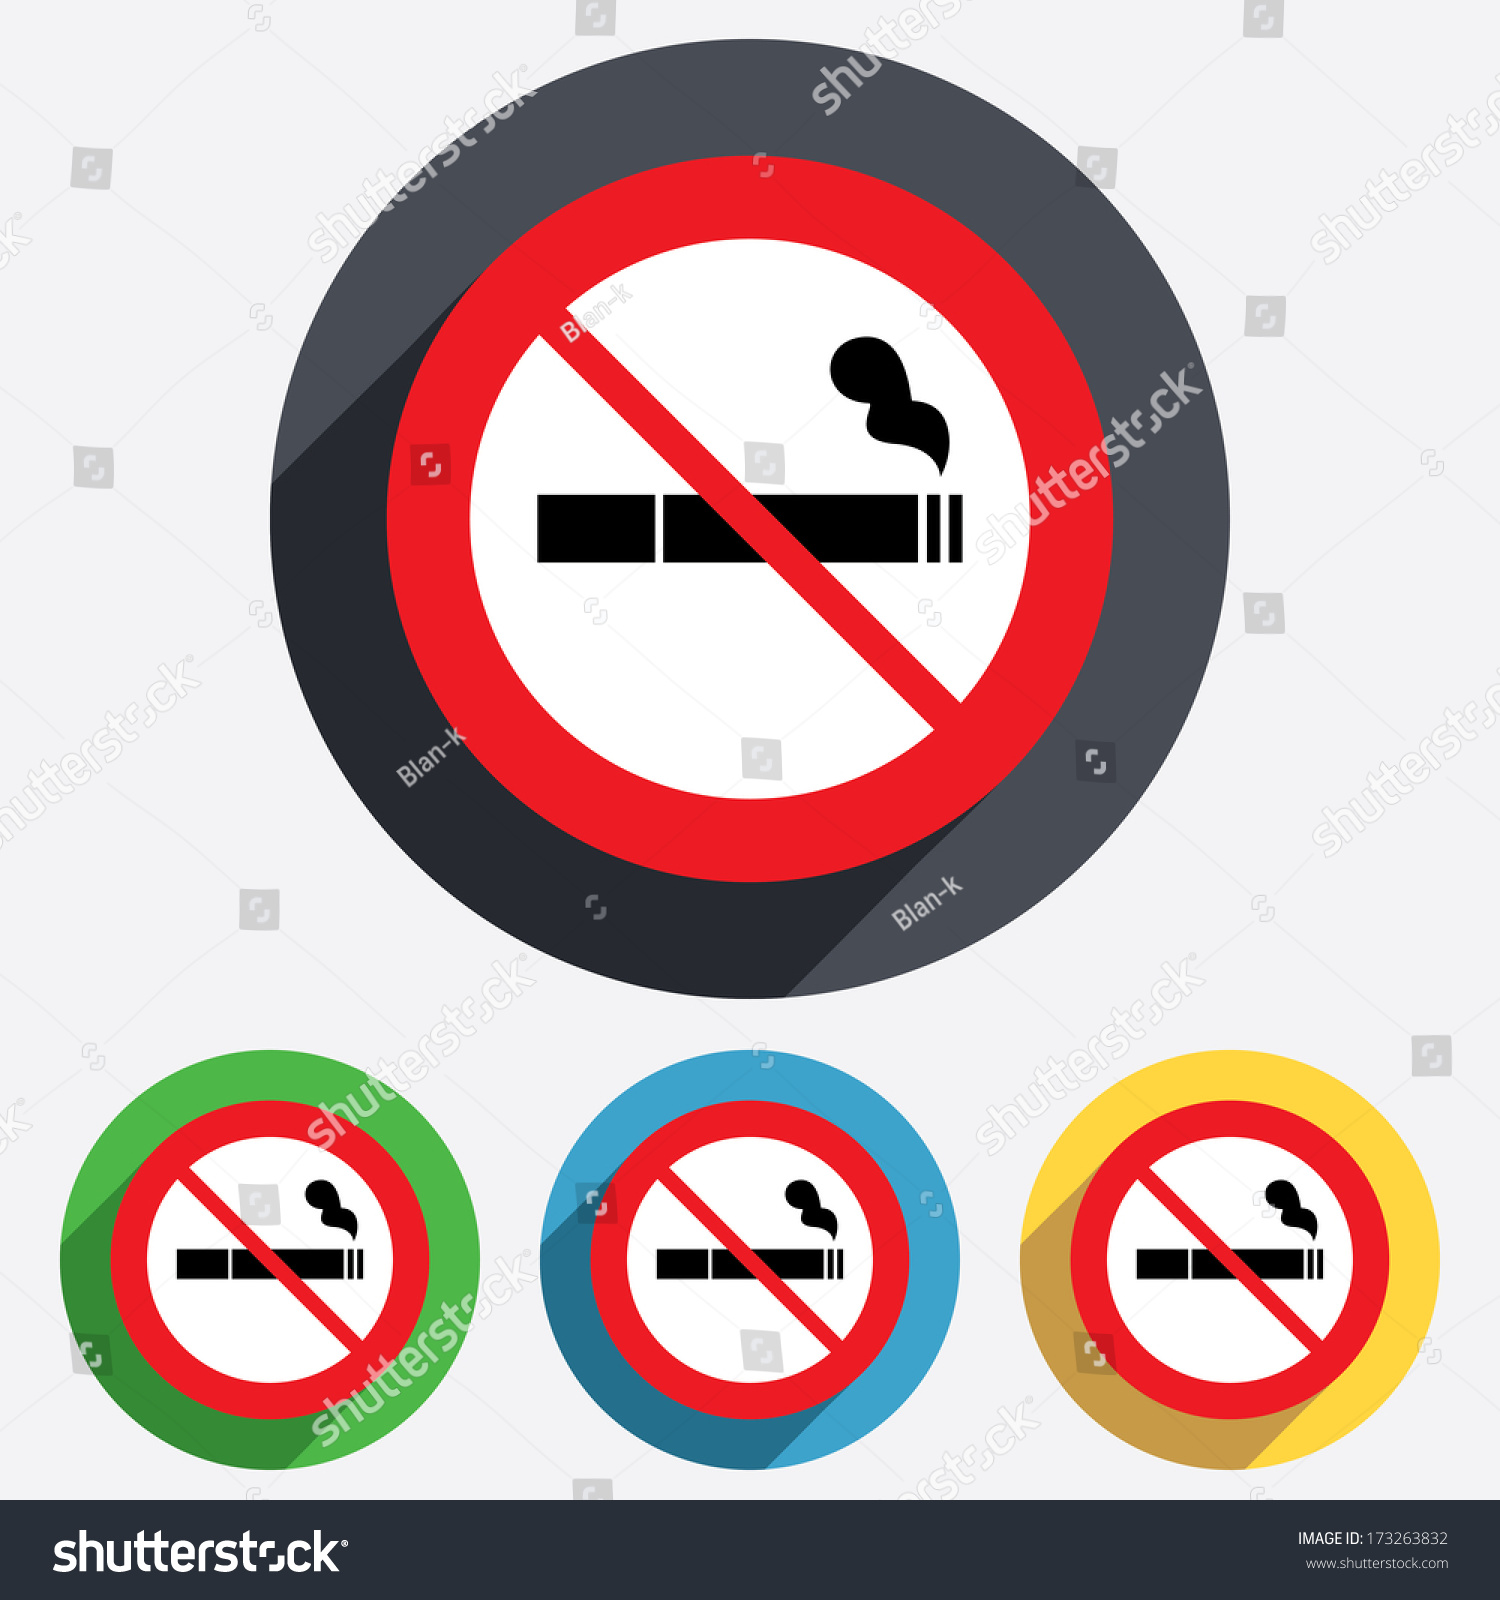 No smoking sign icon cigarette symbol stock vector 173263832 no smoking sign icon cigarette symbol red circle prohibition sign stop flat symbol biocorpaavc Image collections